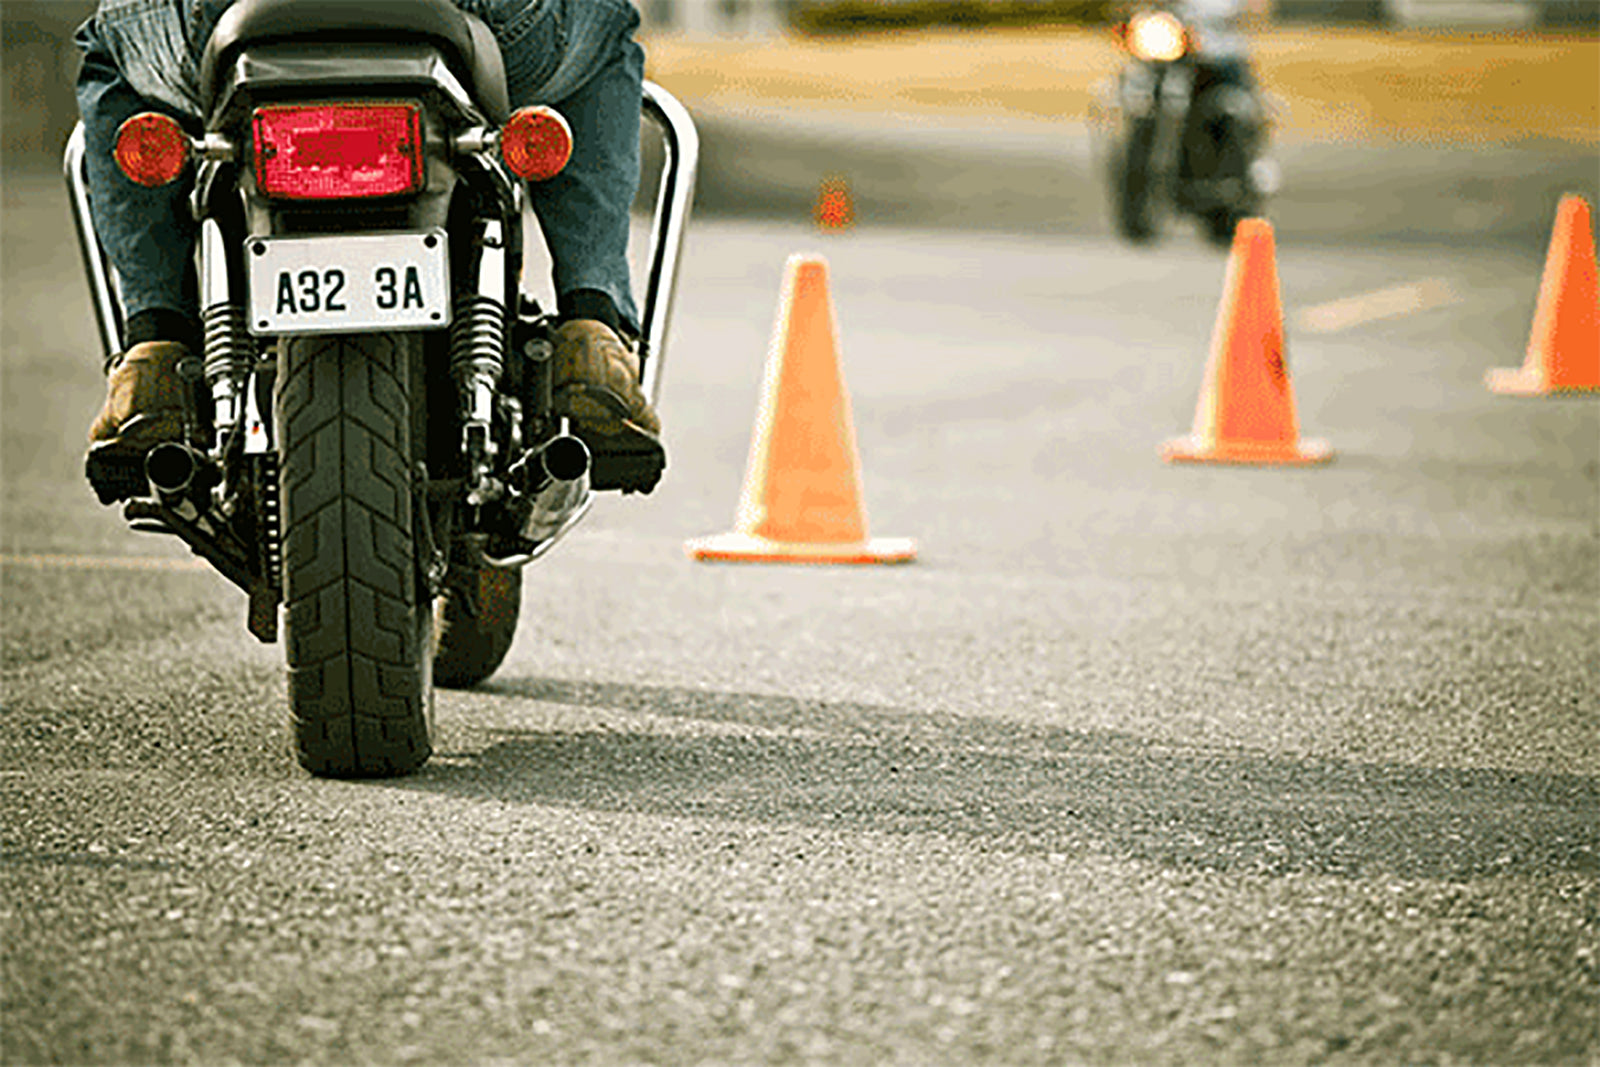 10 Motorcycle safety tips